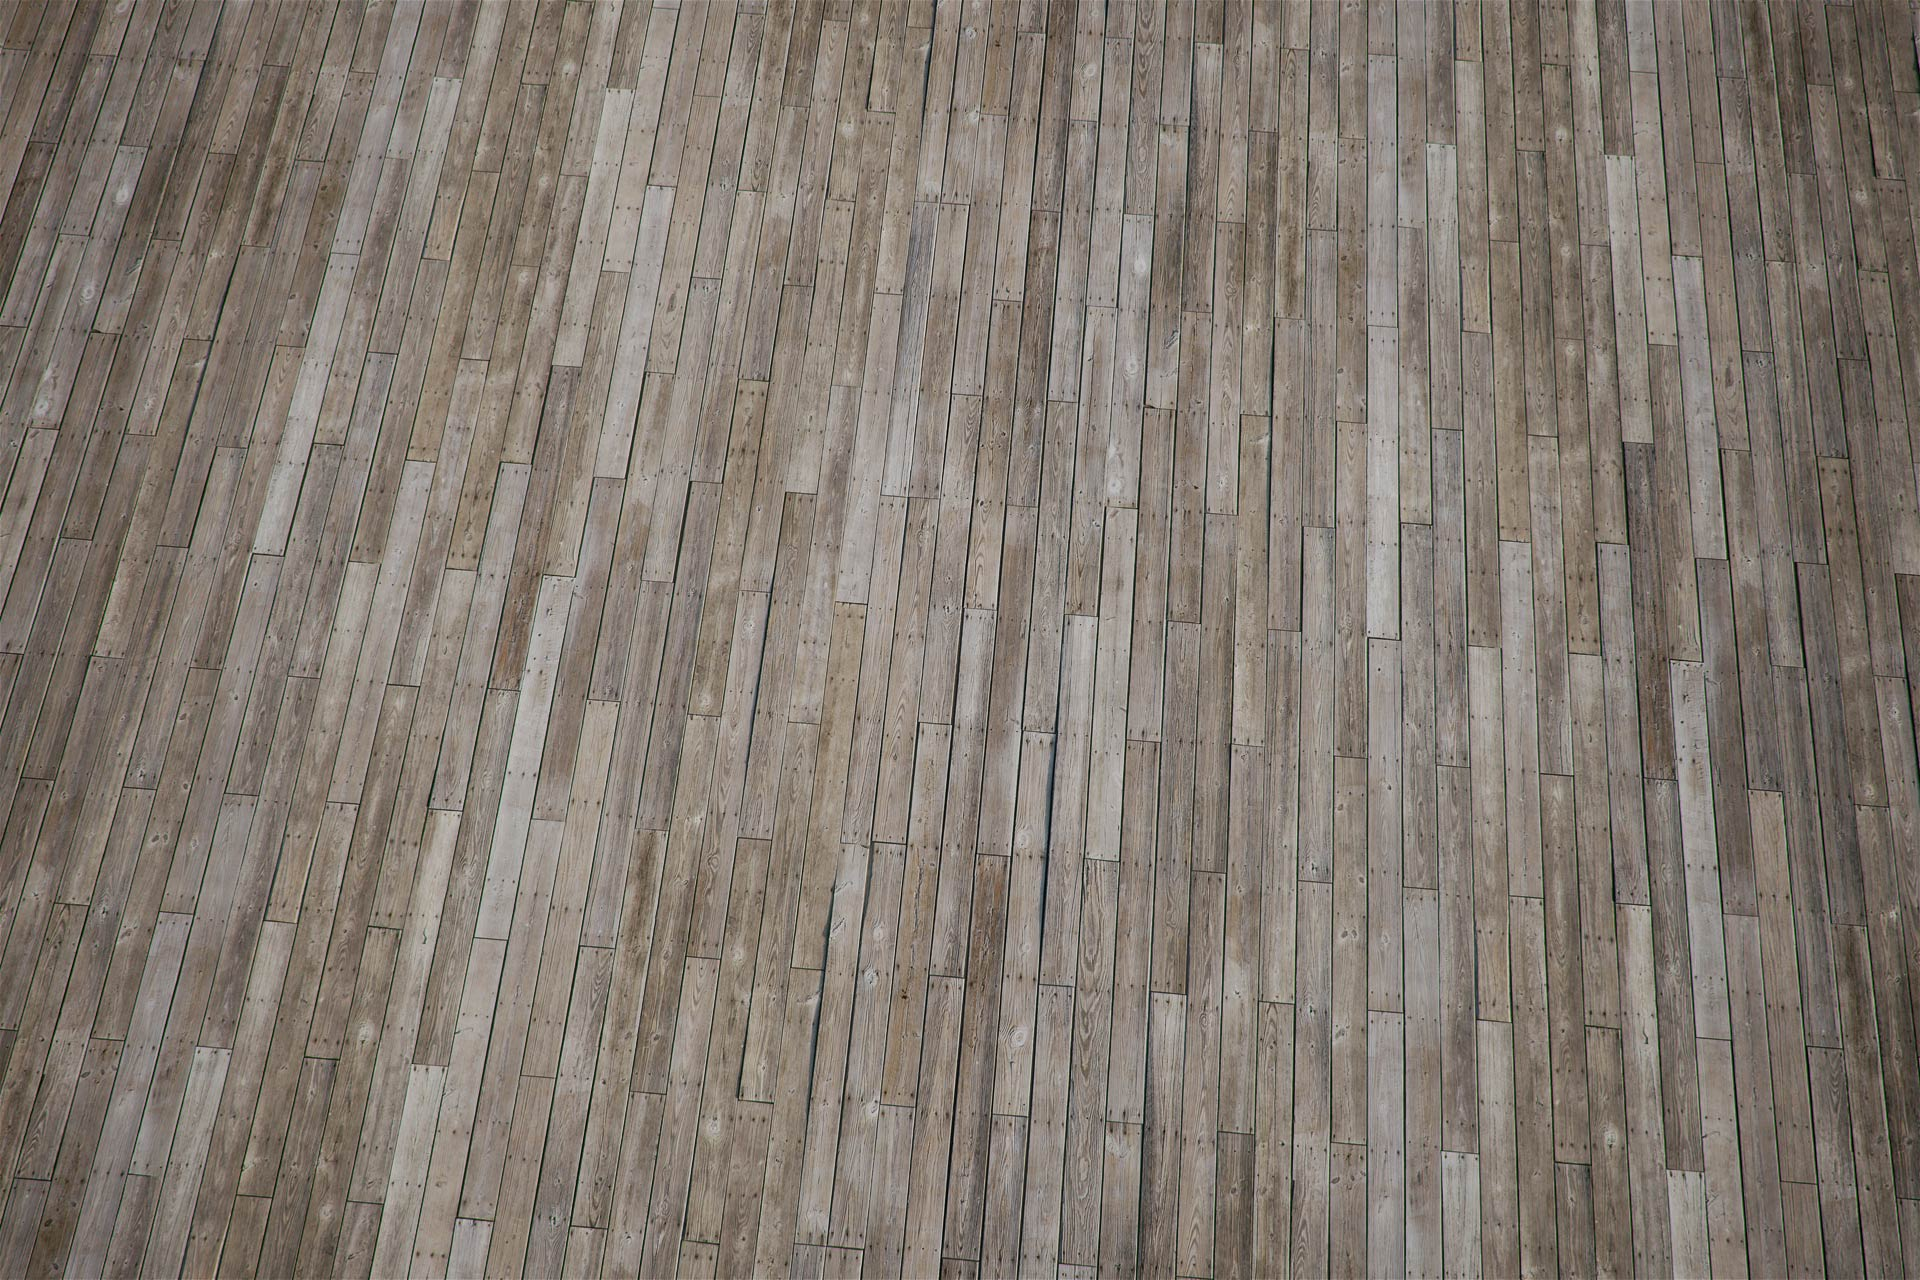 The image shows a floor made using wood plnaks texture provided by Friendly Shade